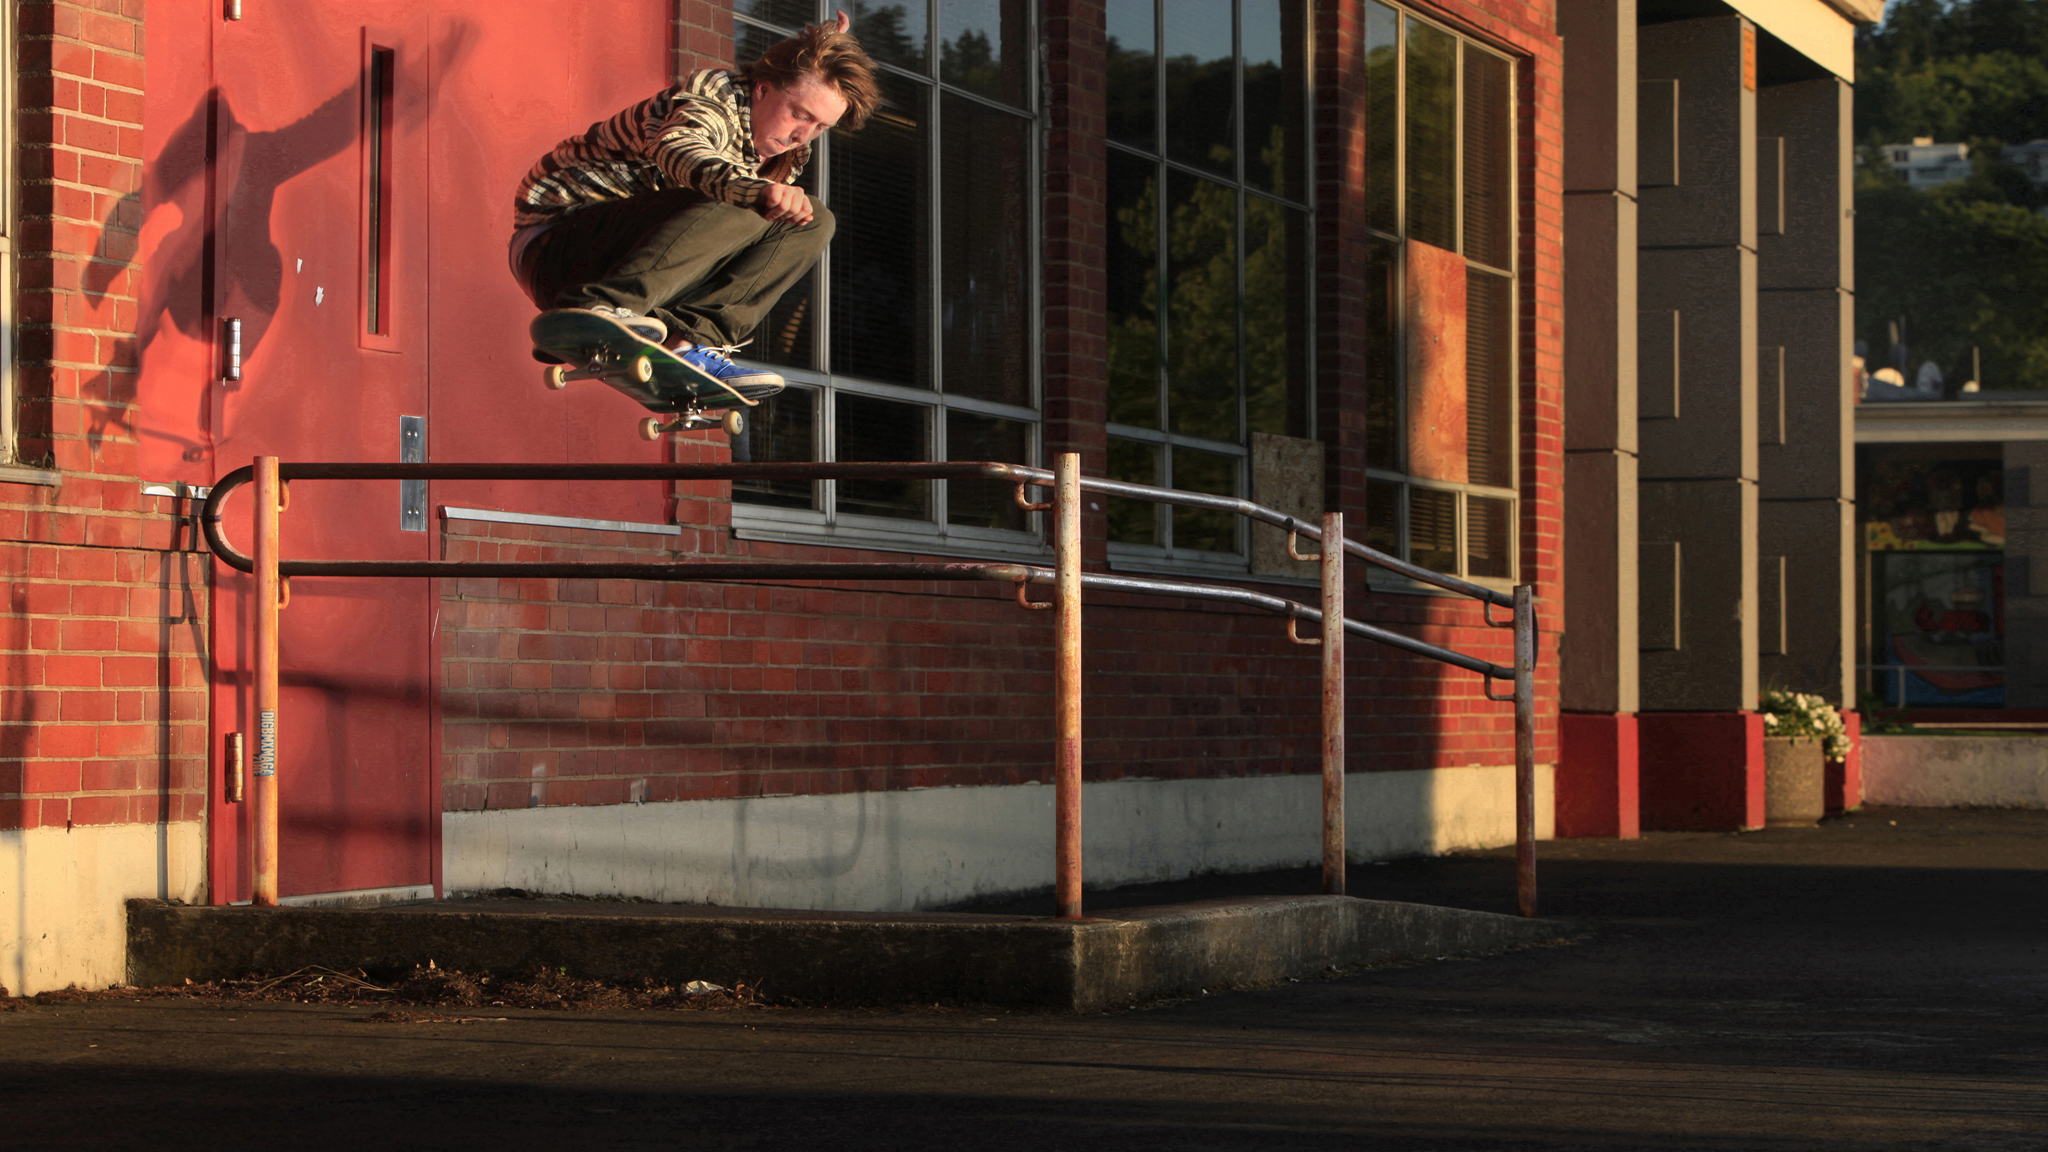 Aaron Daily, Switch ollie